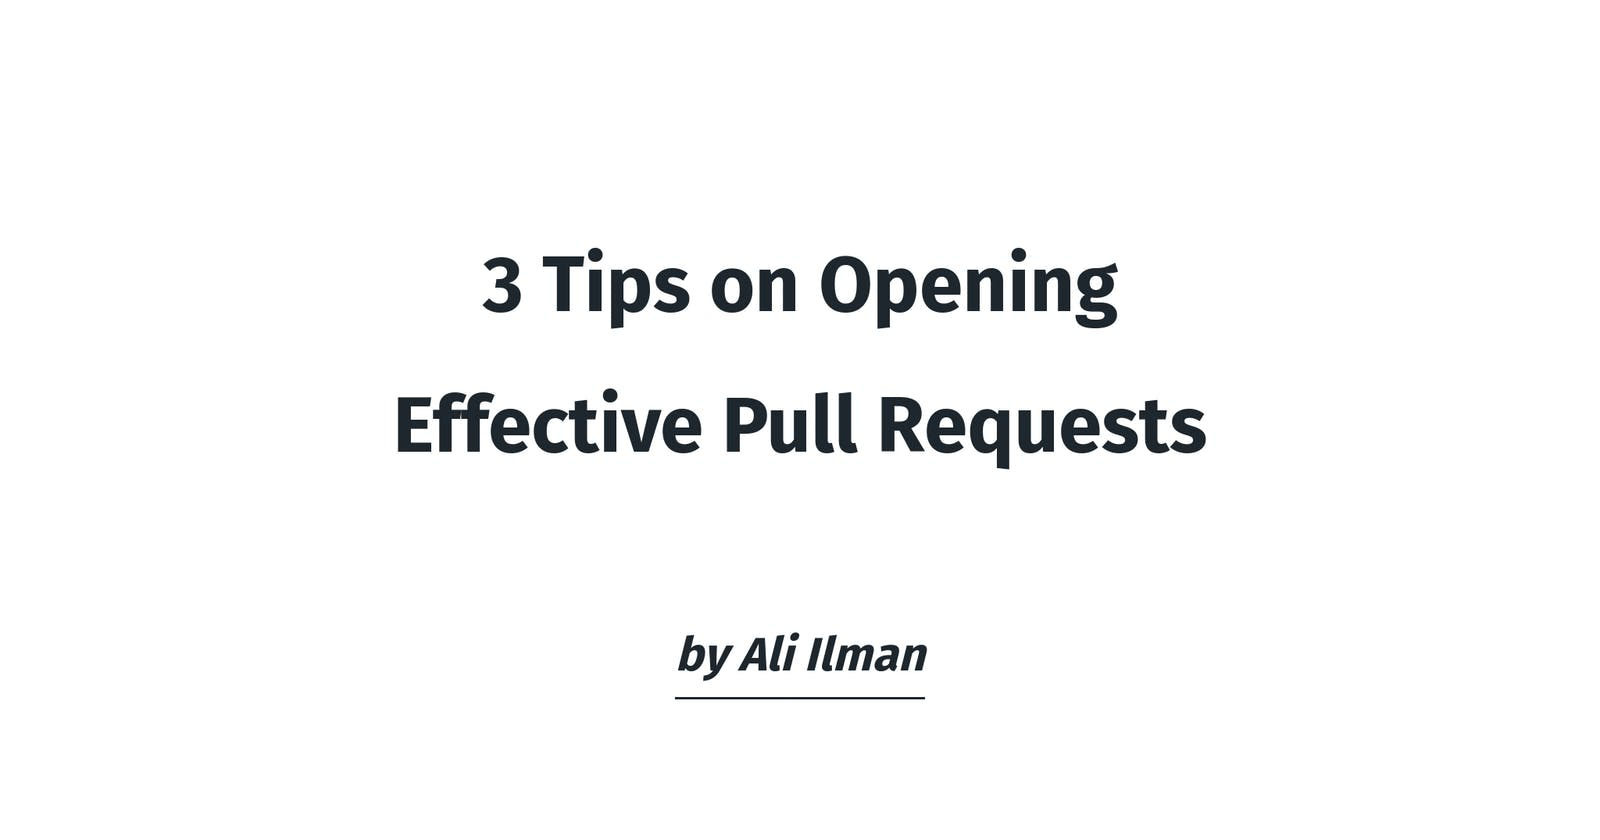 3 Tips on Opening Effective Pull Requests